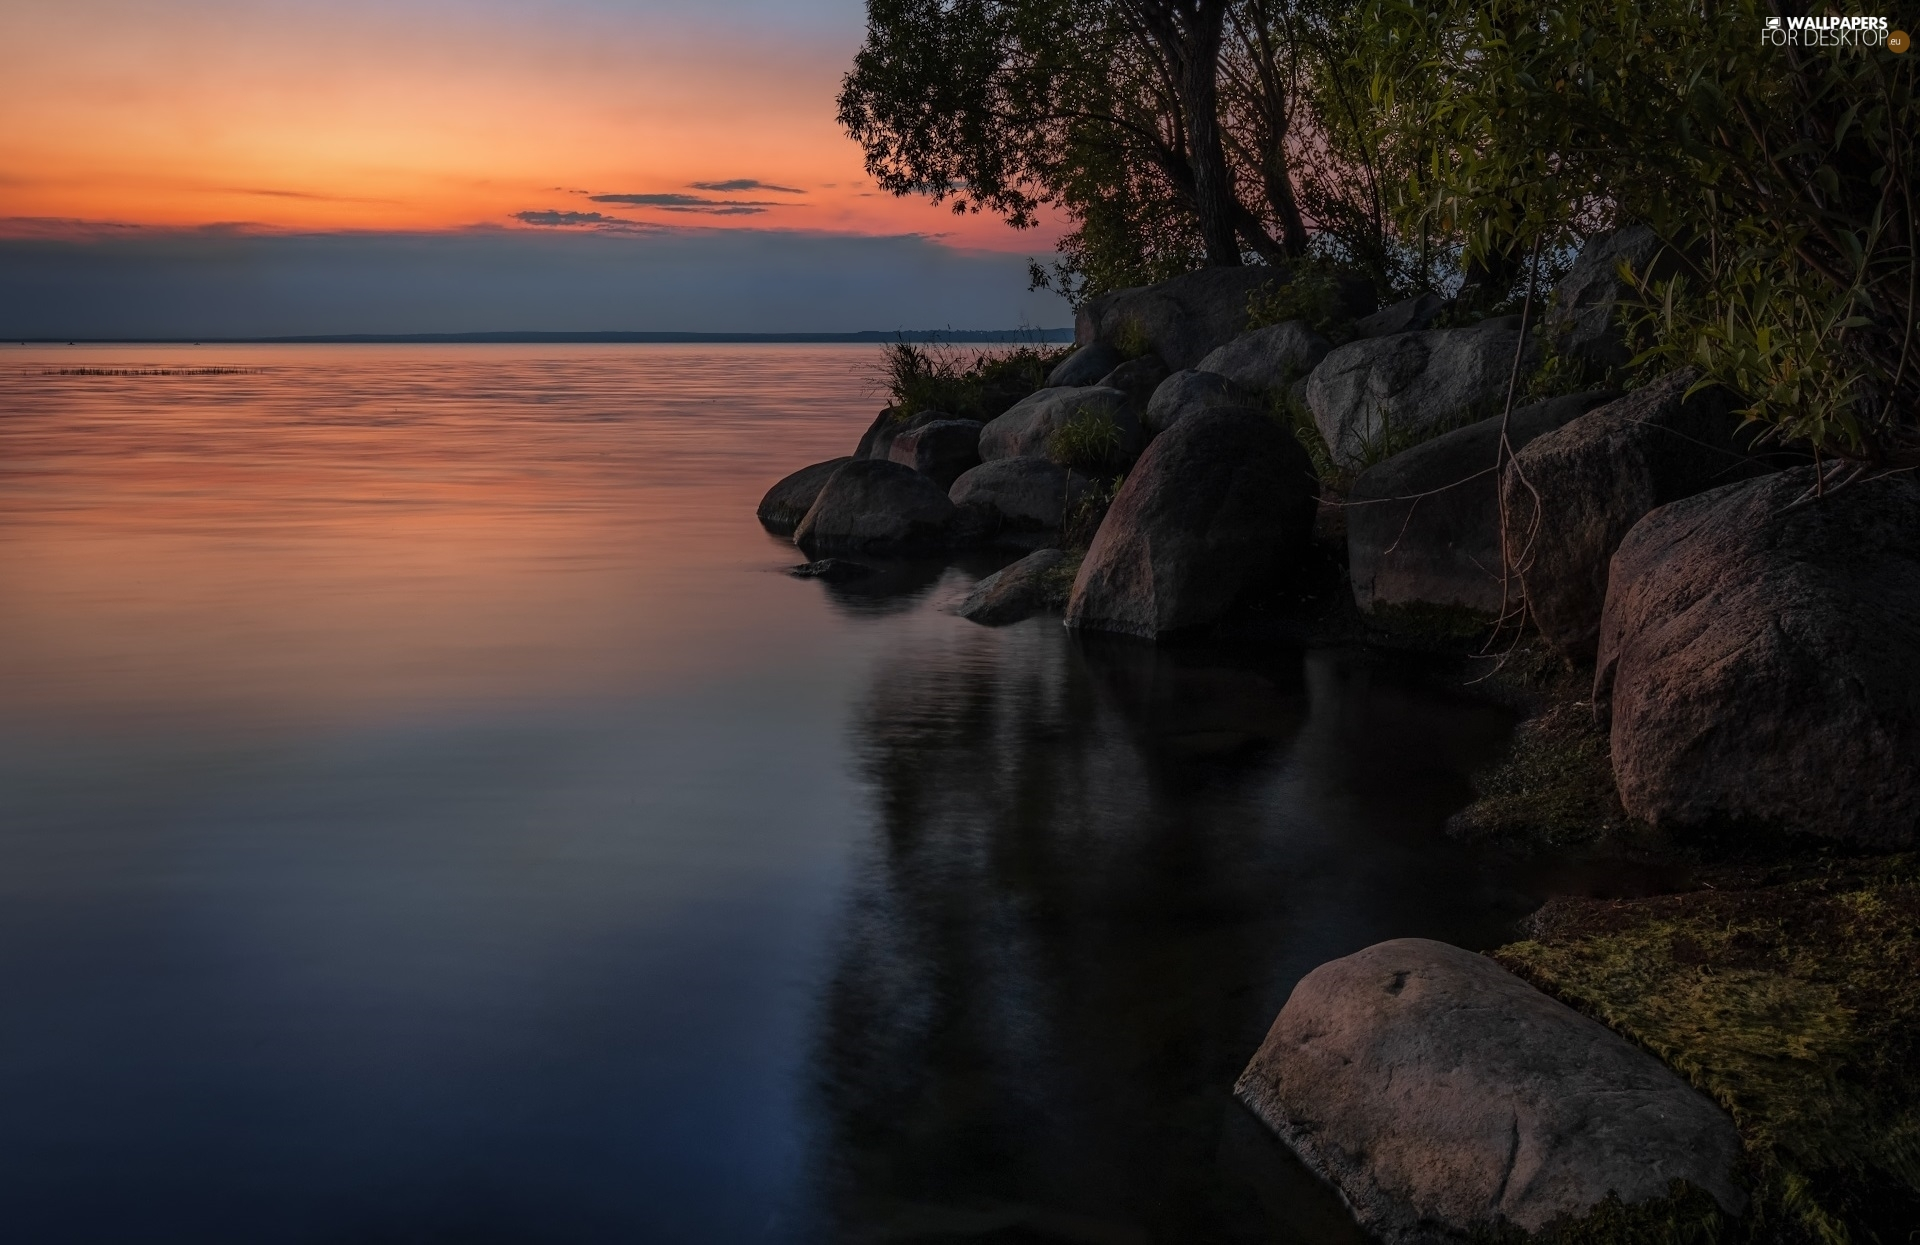 viewes, Great Sunsets, Stones, trees, lake